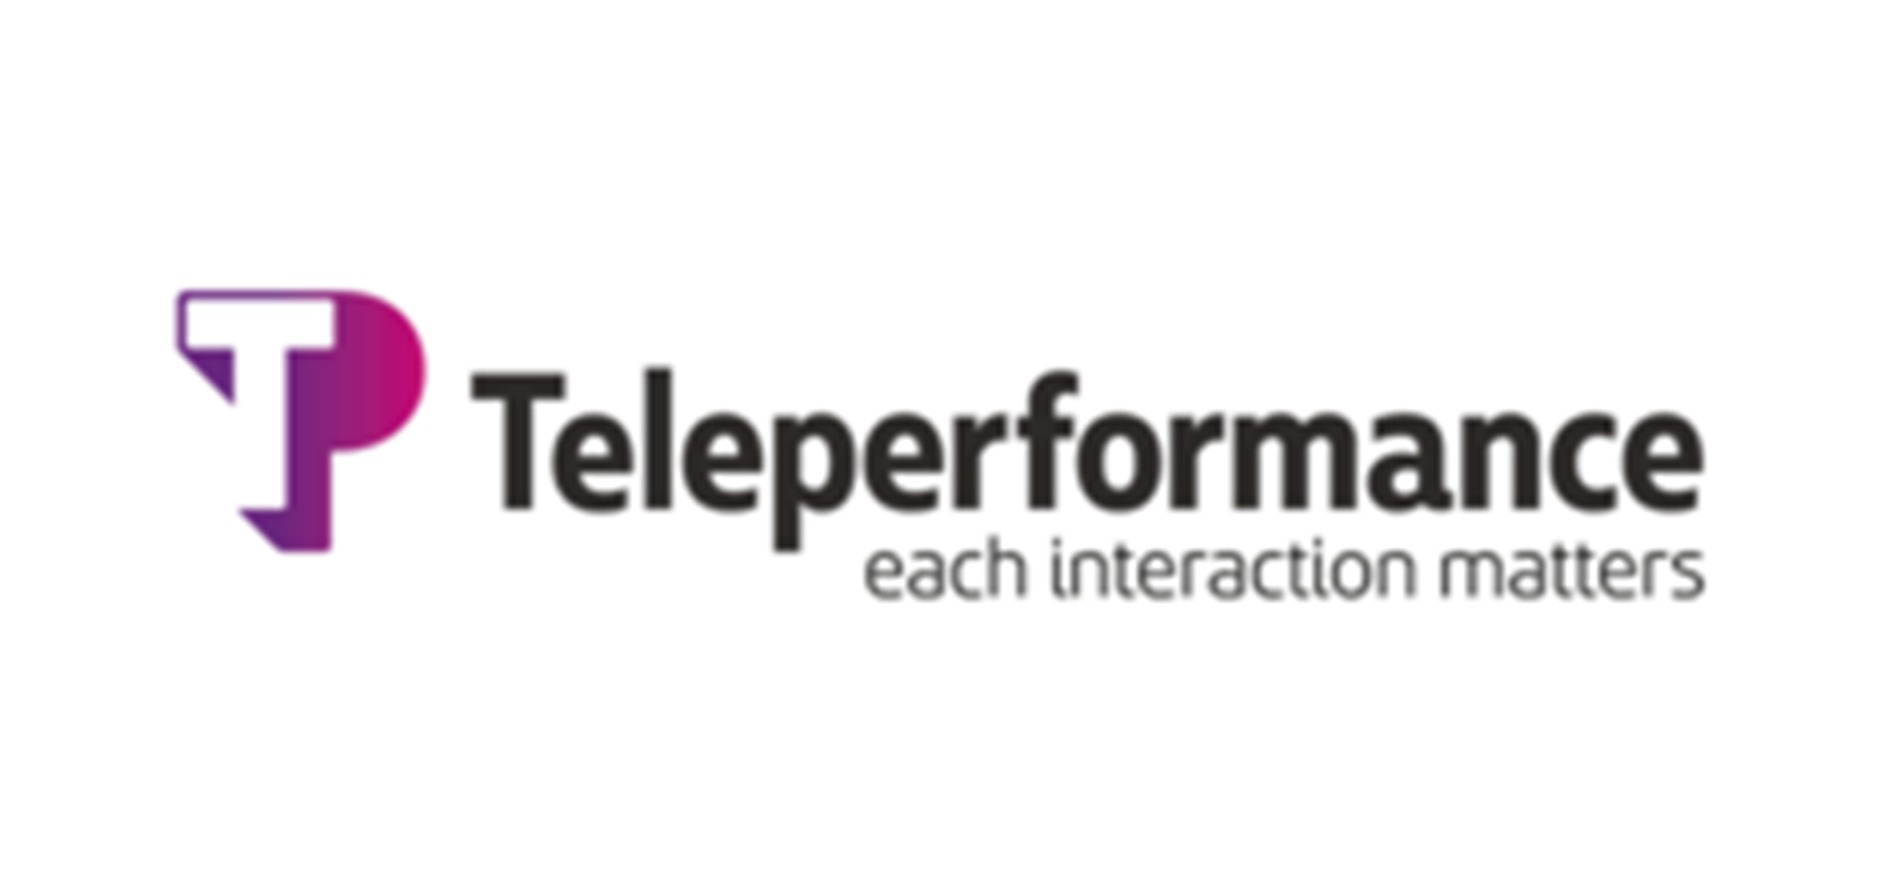 G6 Teleperformance